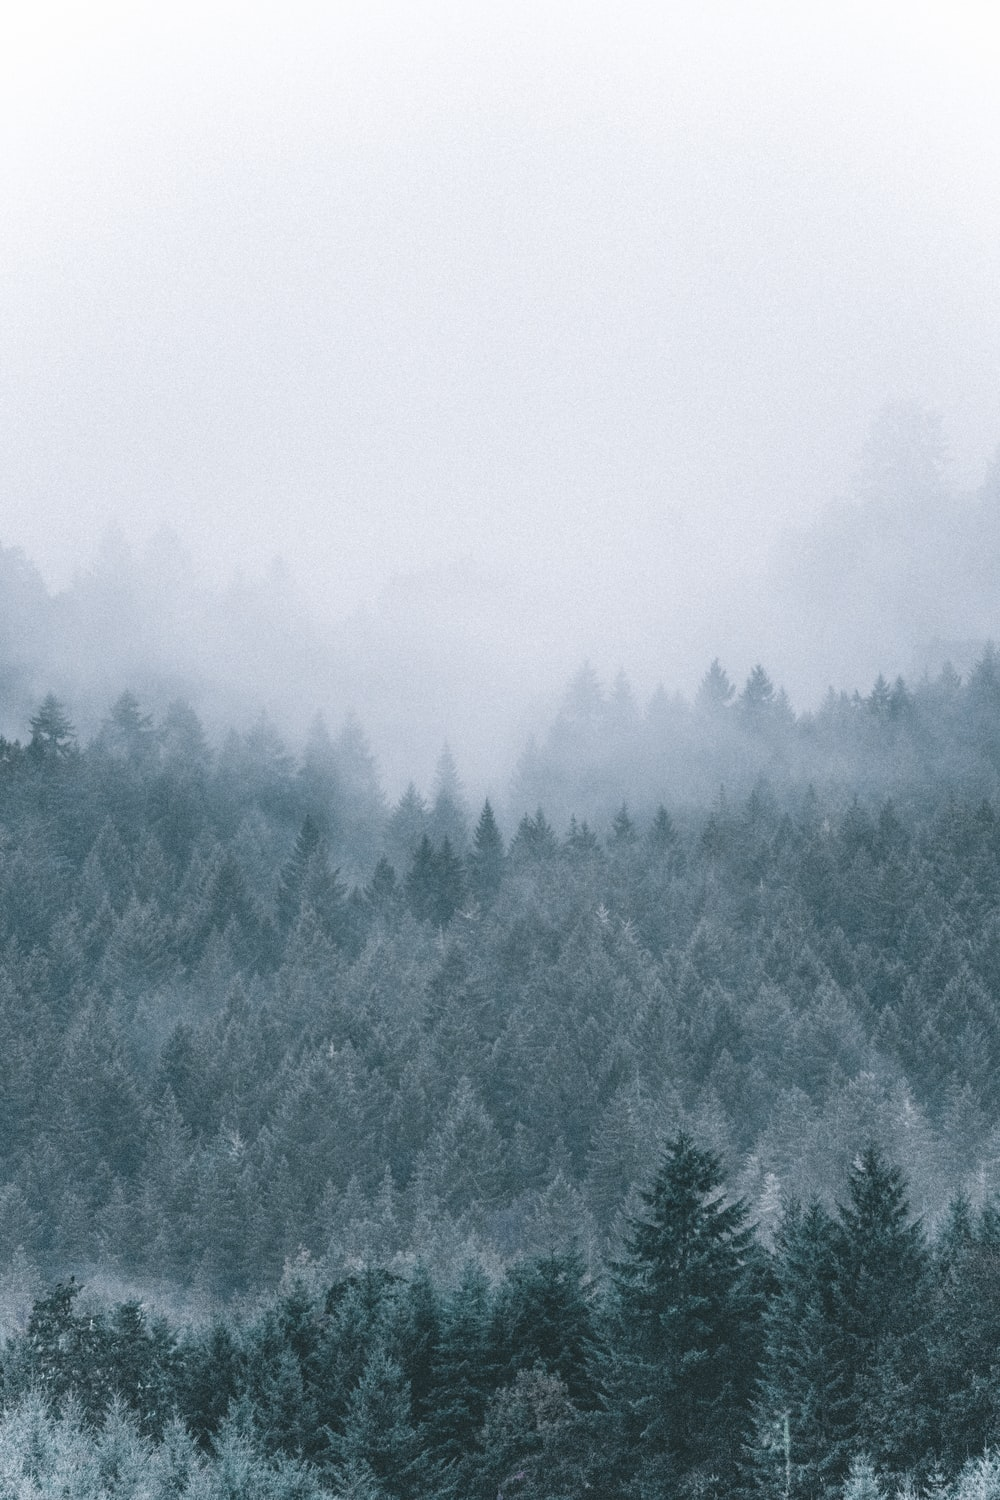 foggy icy green pine trees scenery